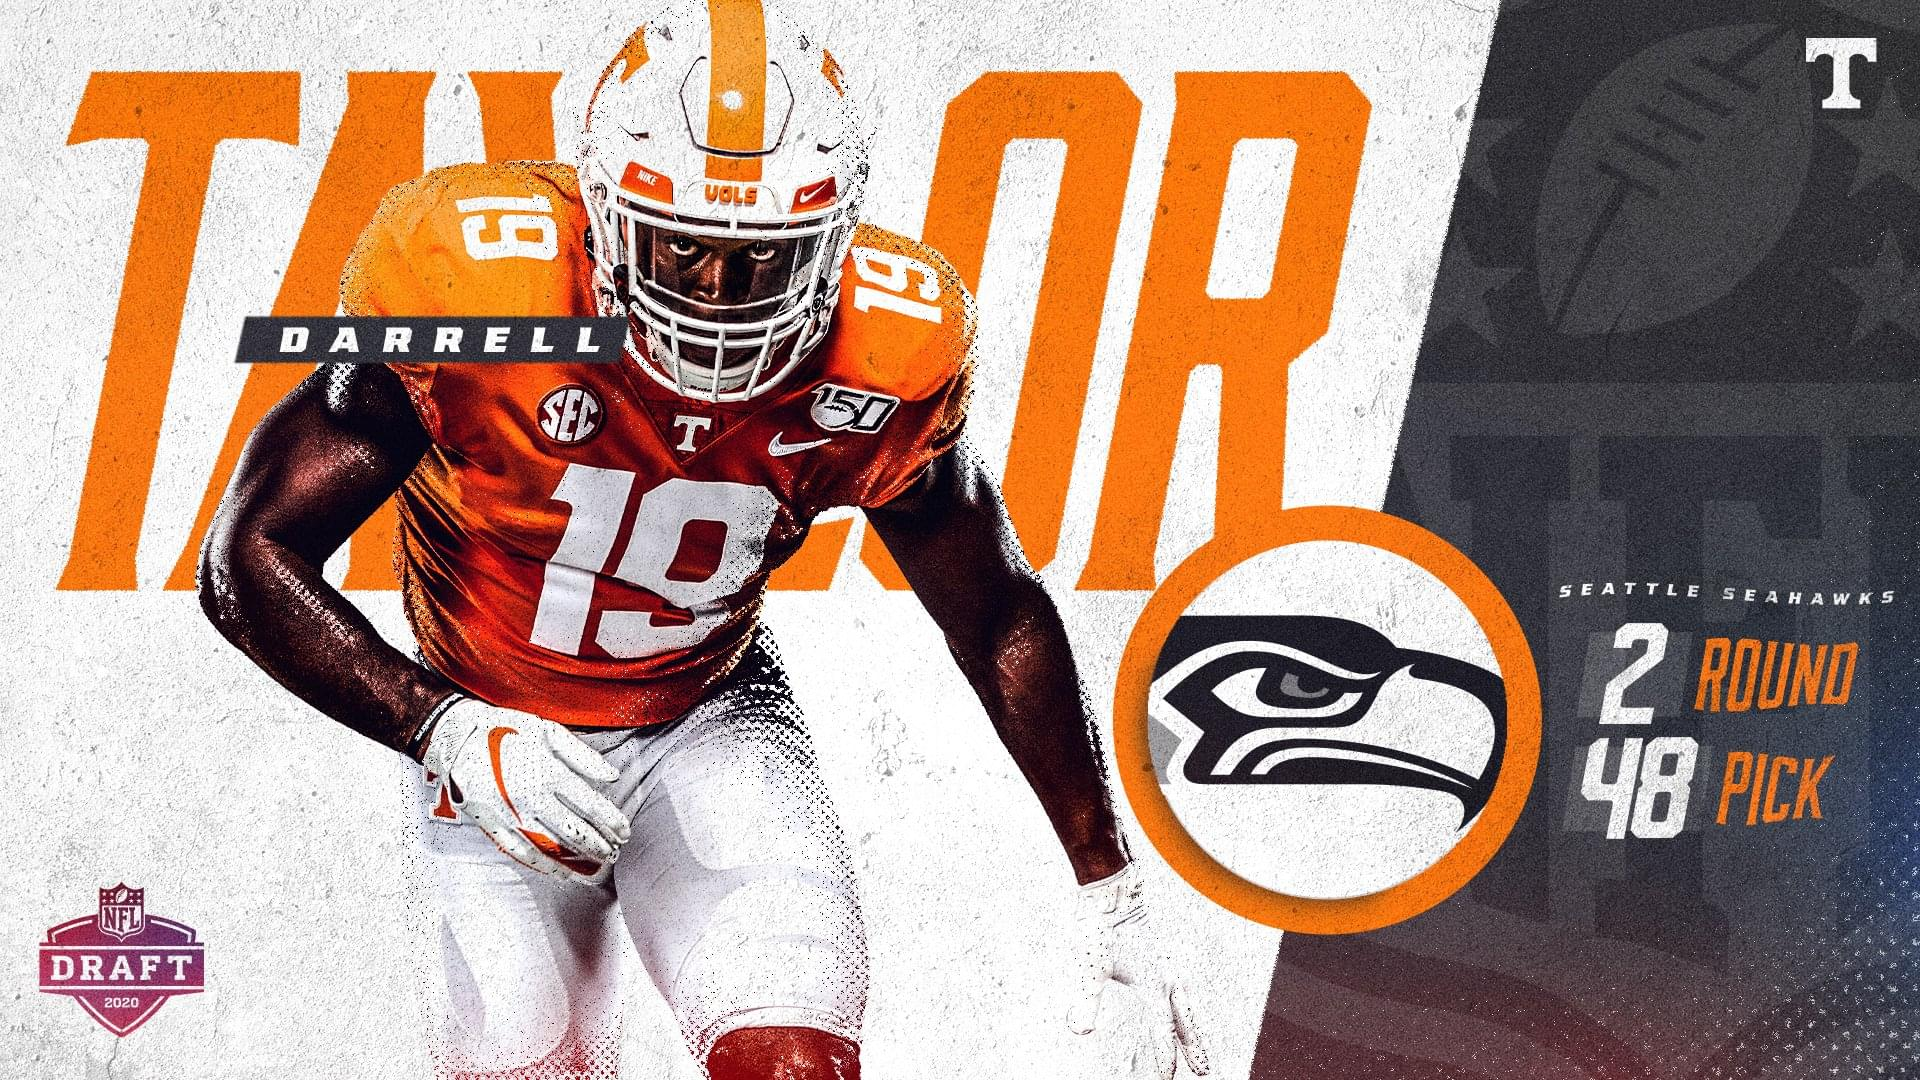 Seahawks Trade Up, Pick Darrell Taylor in Second Round of 2020 NFL Draft